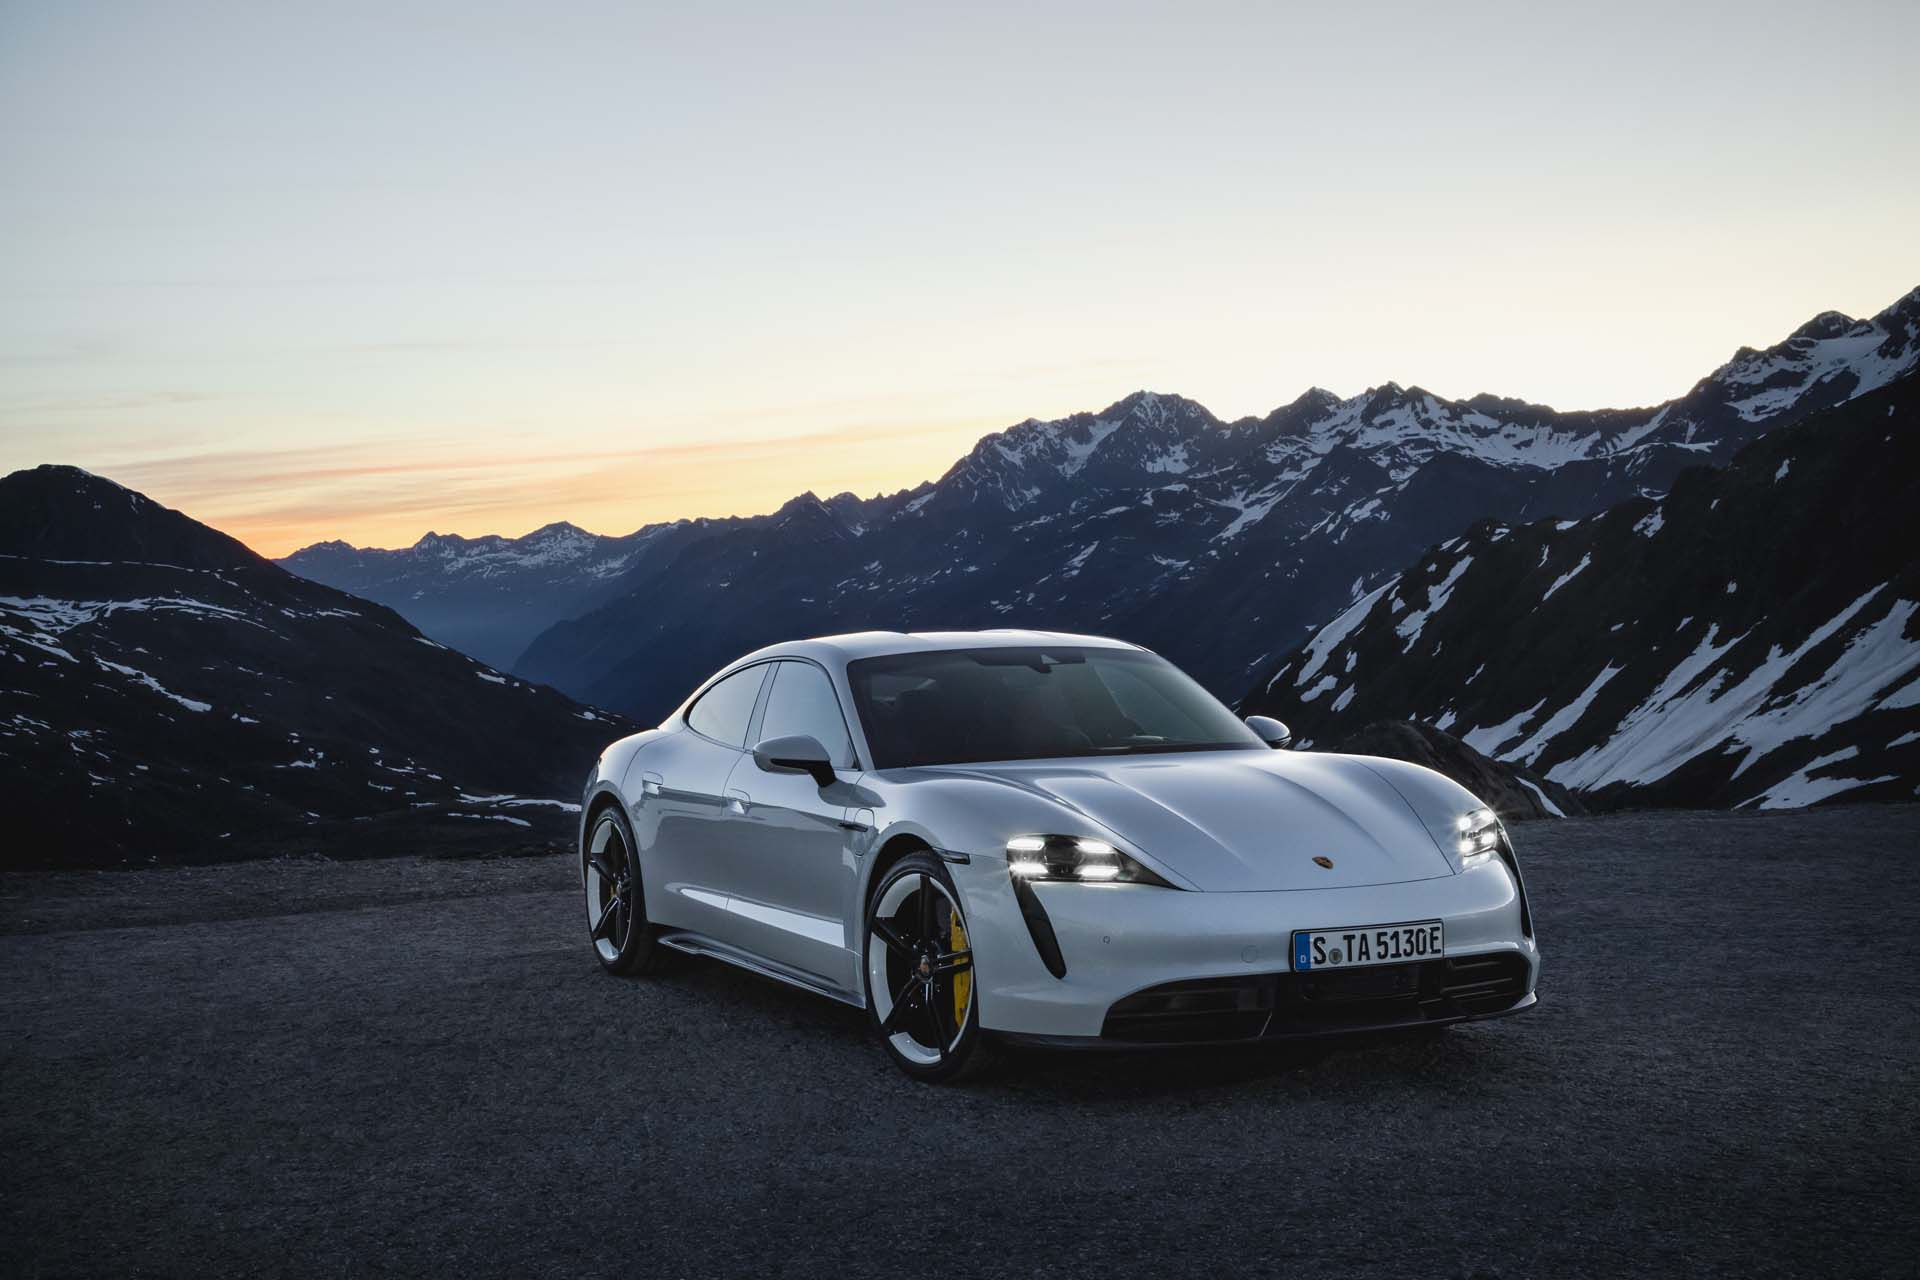 2020 Porsche Taycan Electric Car: Seven Things We Didn't